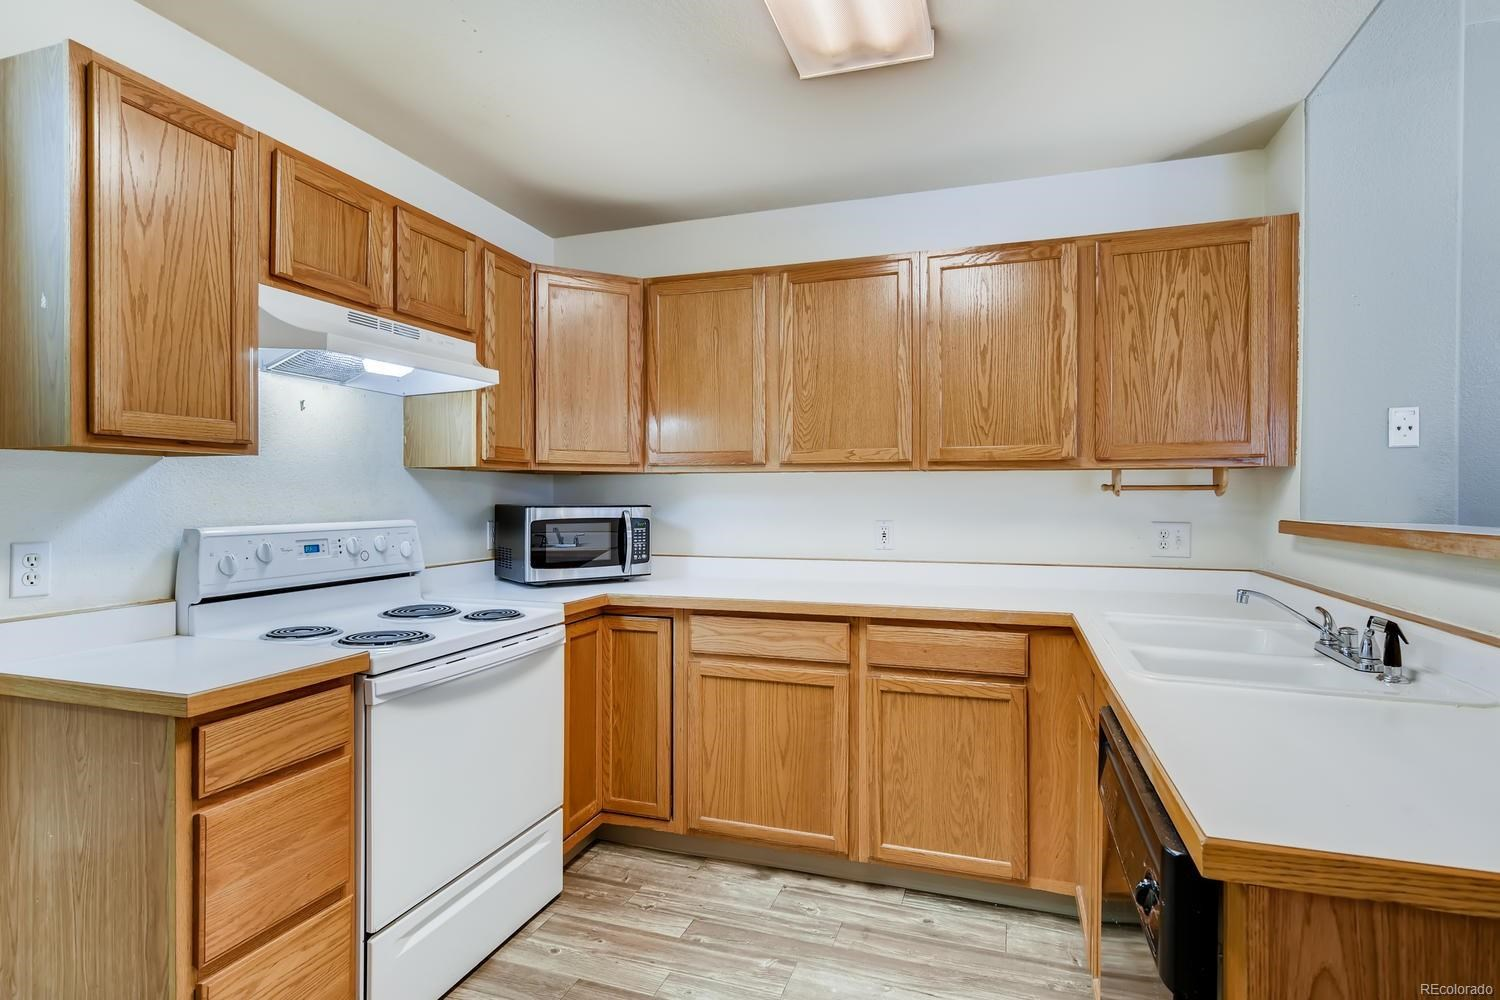 MLS# 7435178 - 9 - 3926 Christy Heights, Colorado Springs, CO 80906